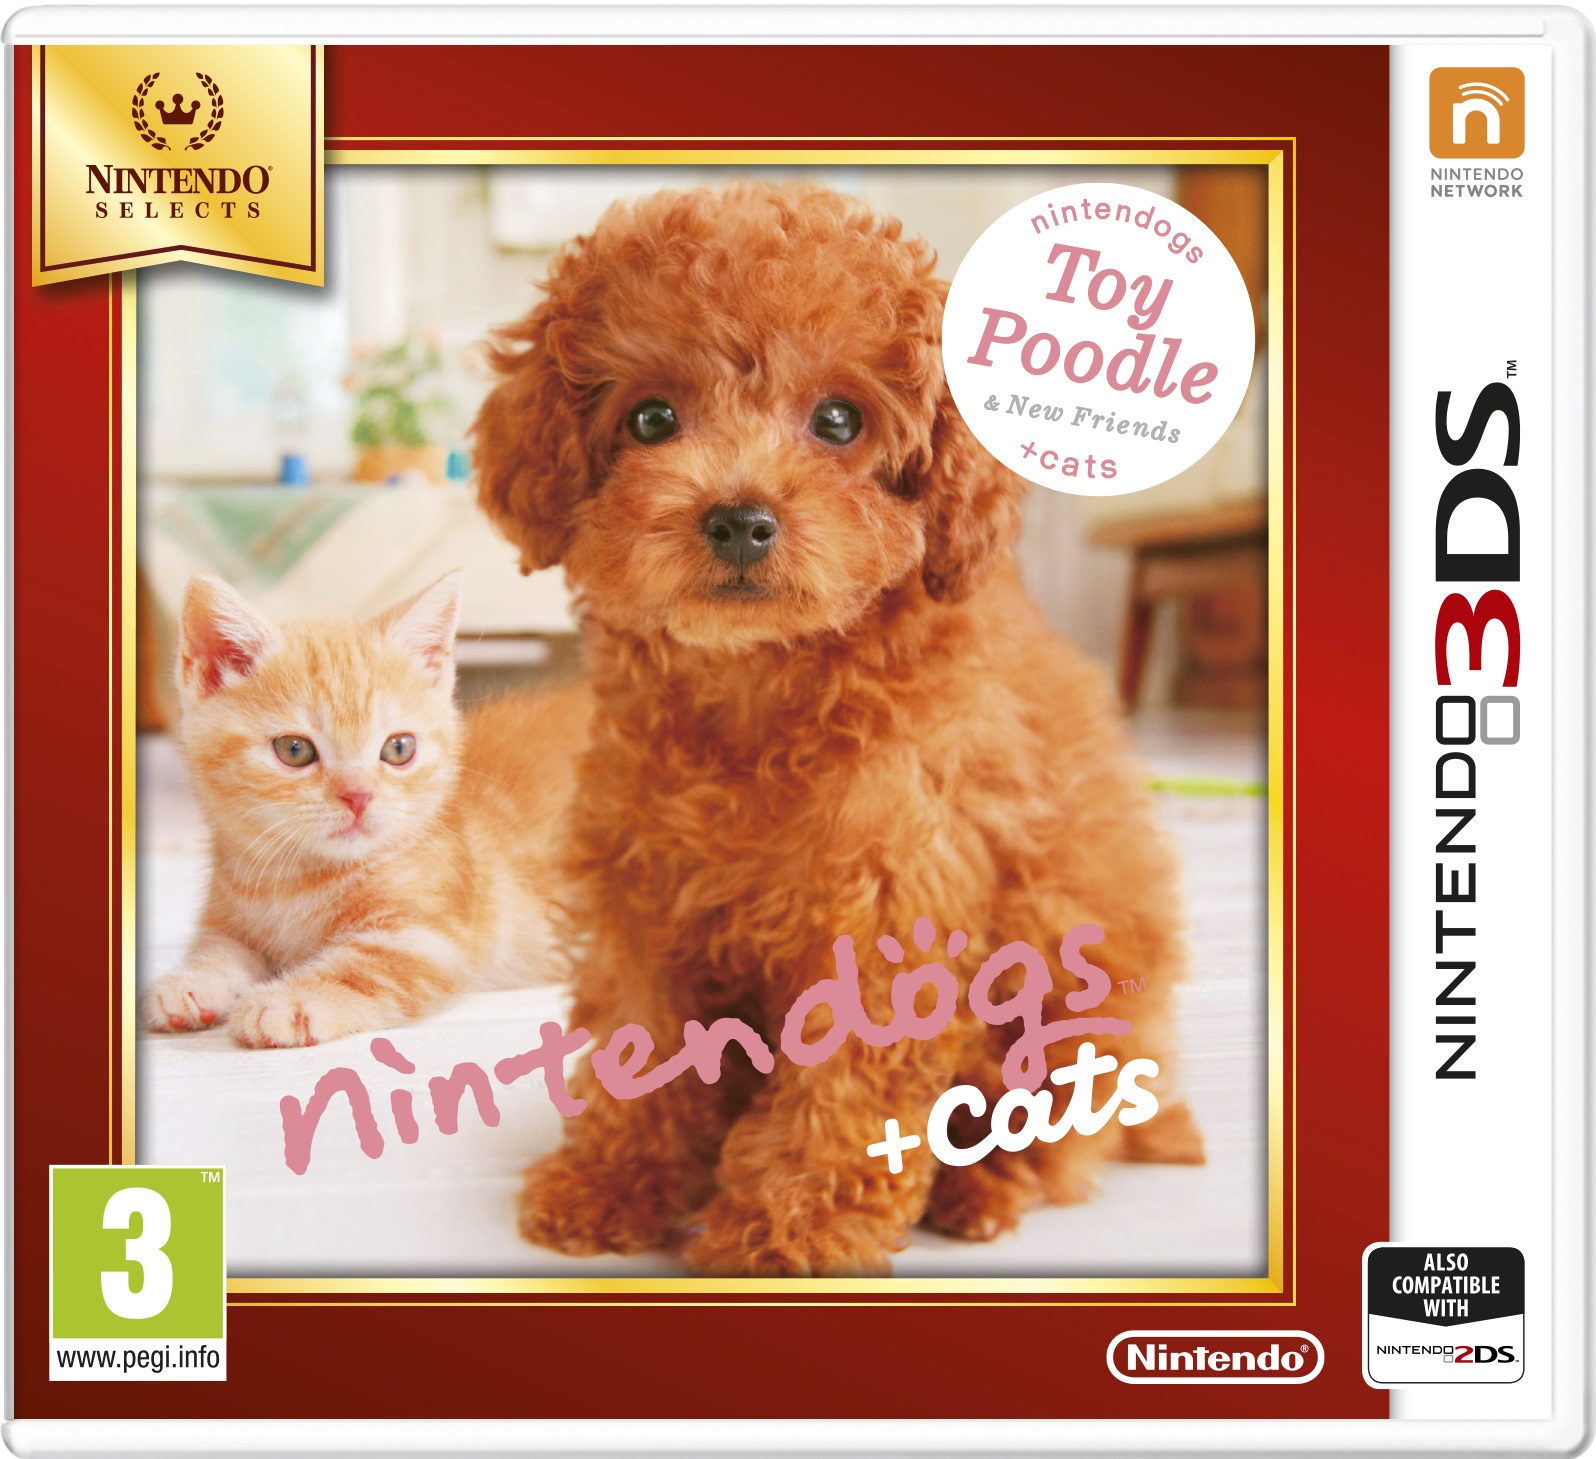 Nintendogs and Cats 3D: Toy Poodle (Select)